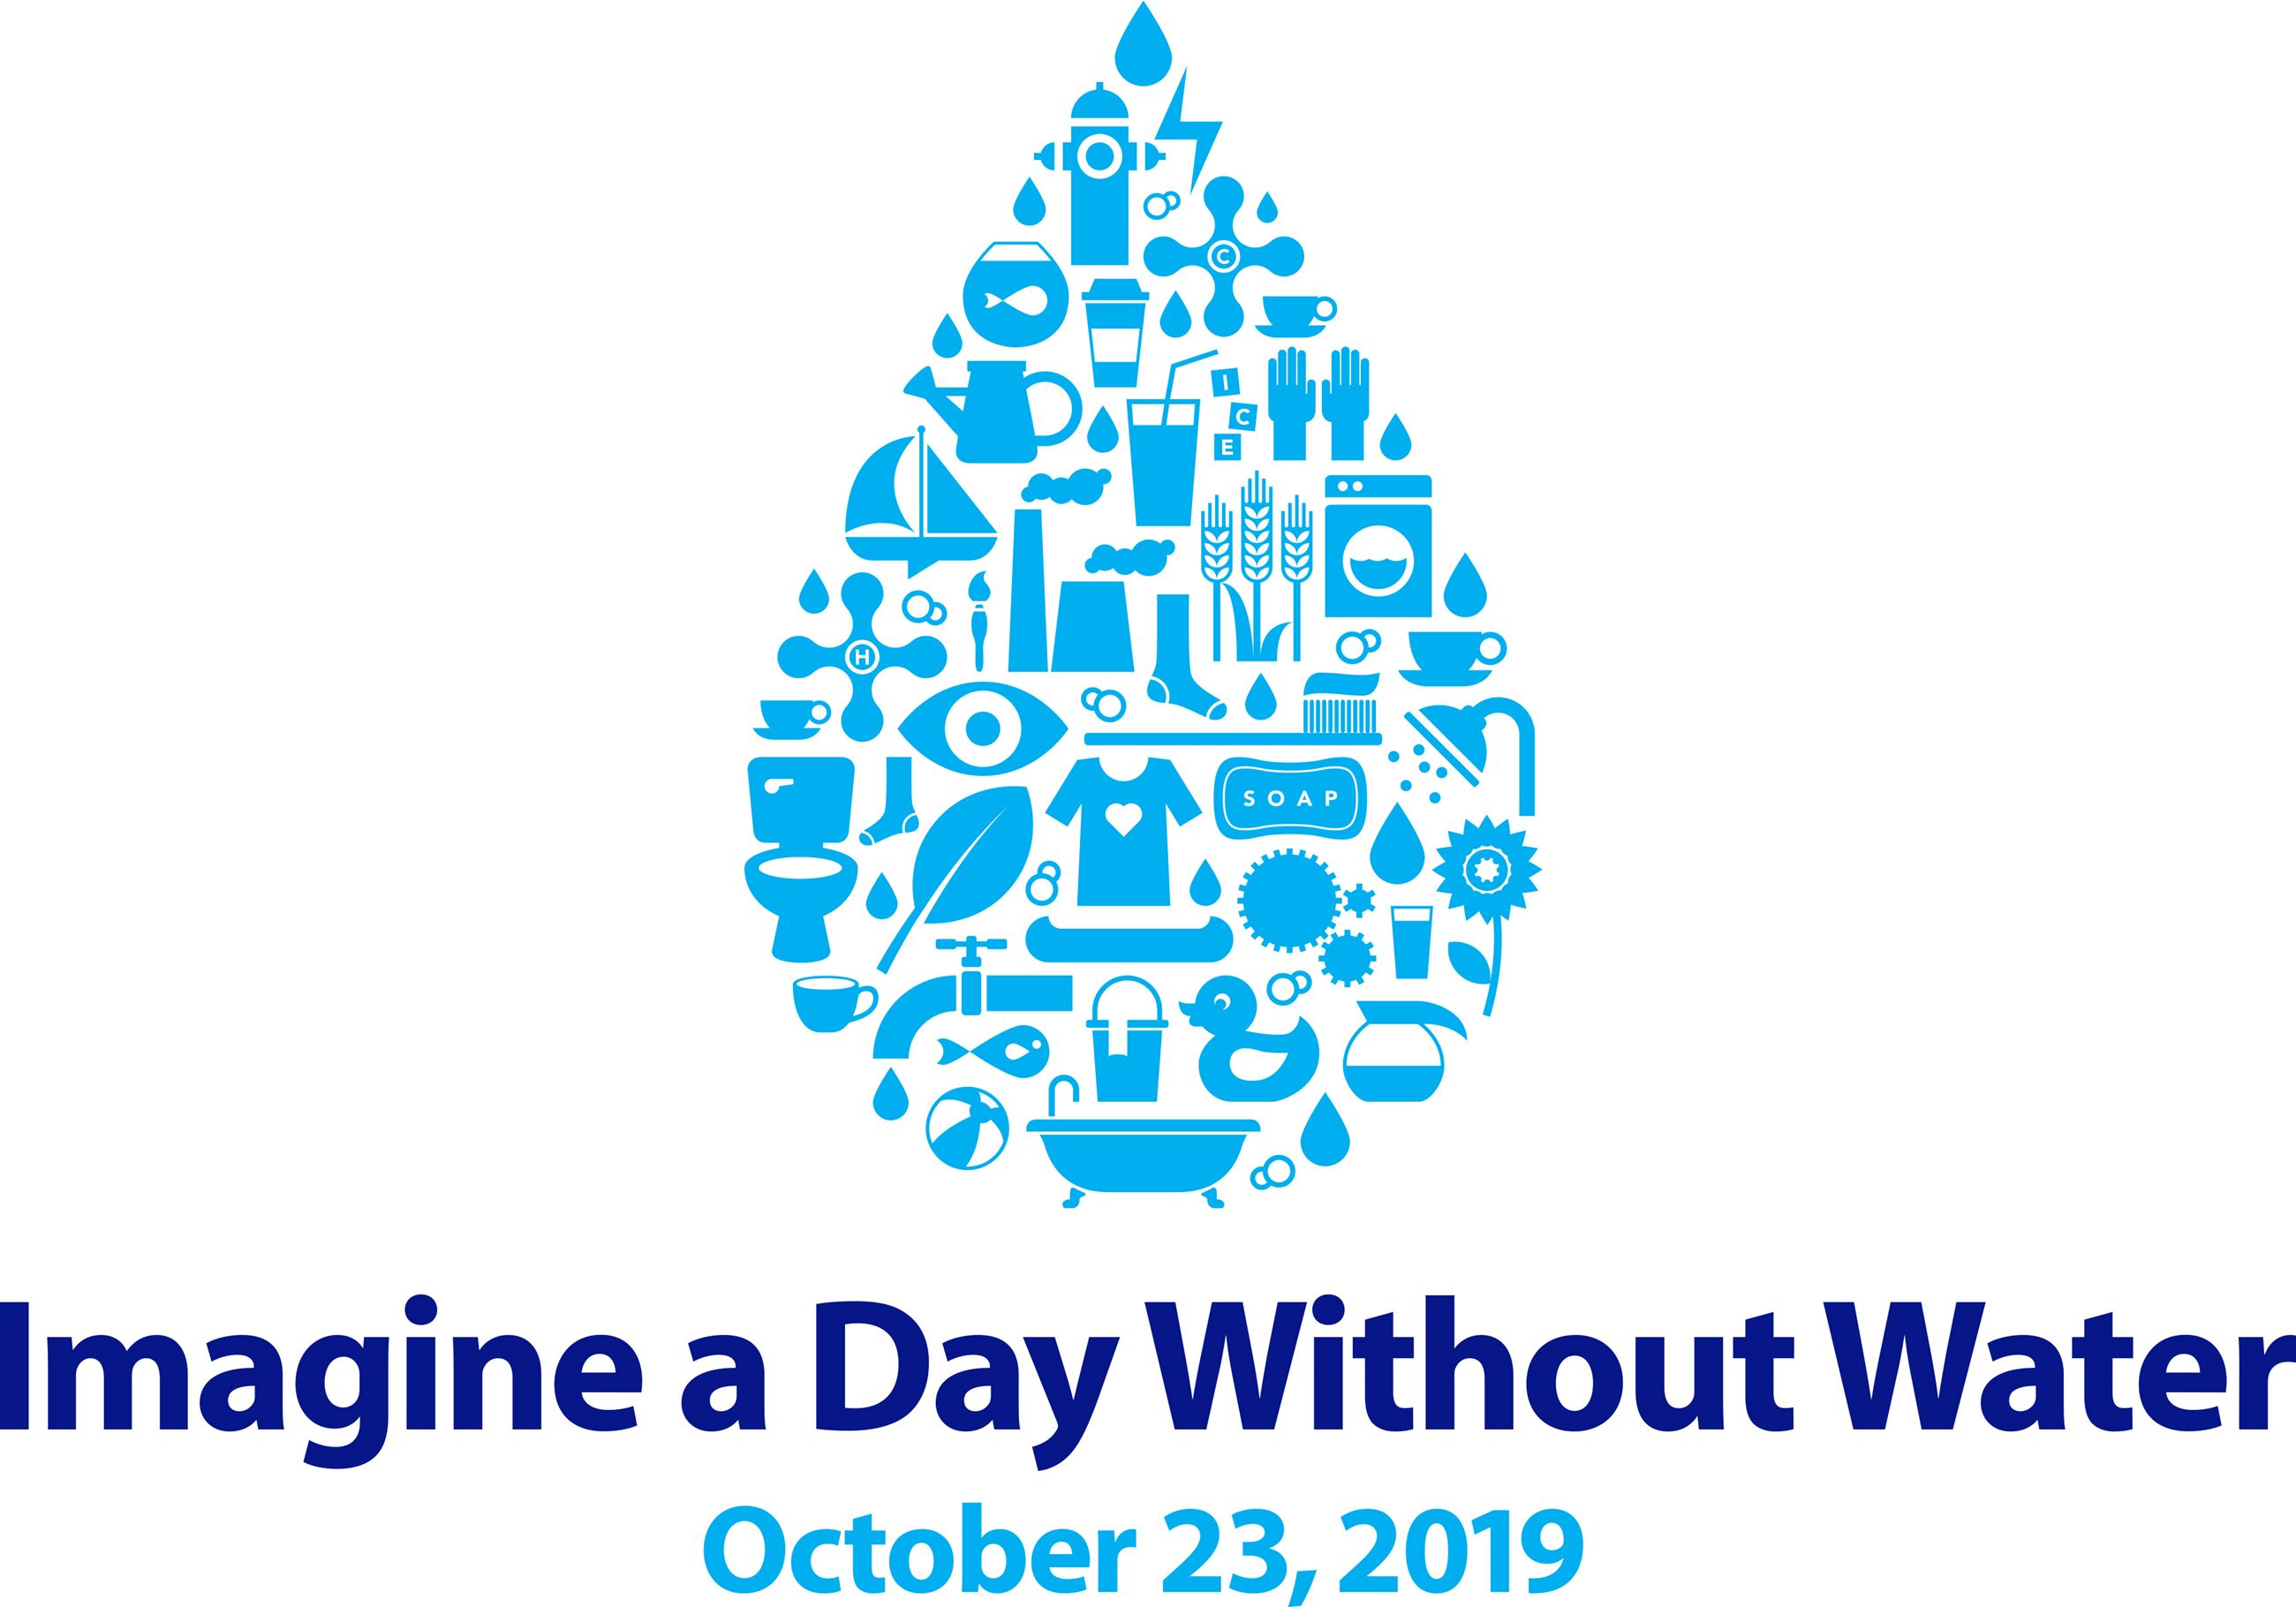 The annual A Day Without Water awareness campaign